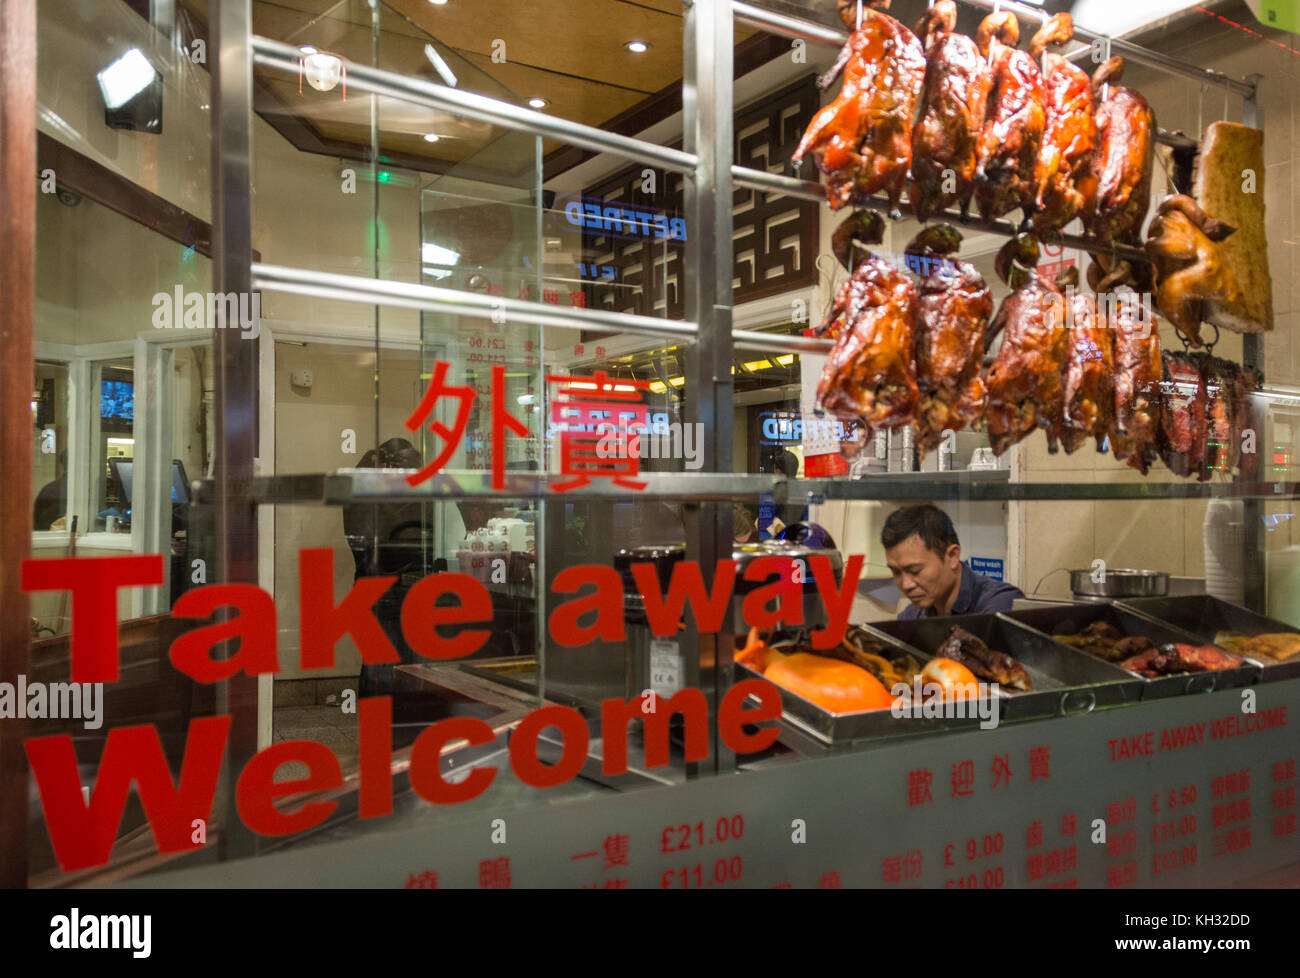 Aromatic Chinese crispy duck on display in China Town, London, England, UK. - Stock Image